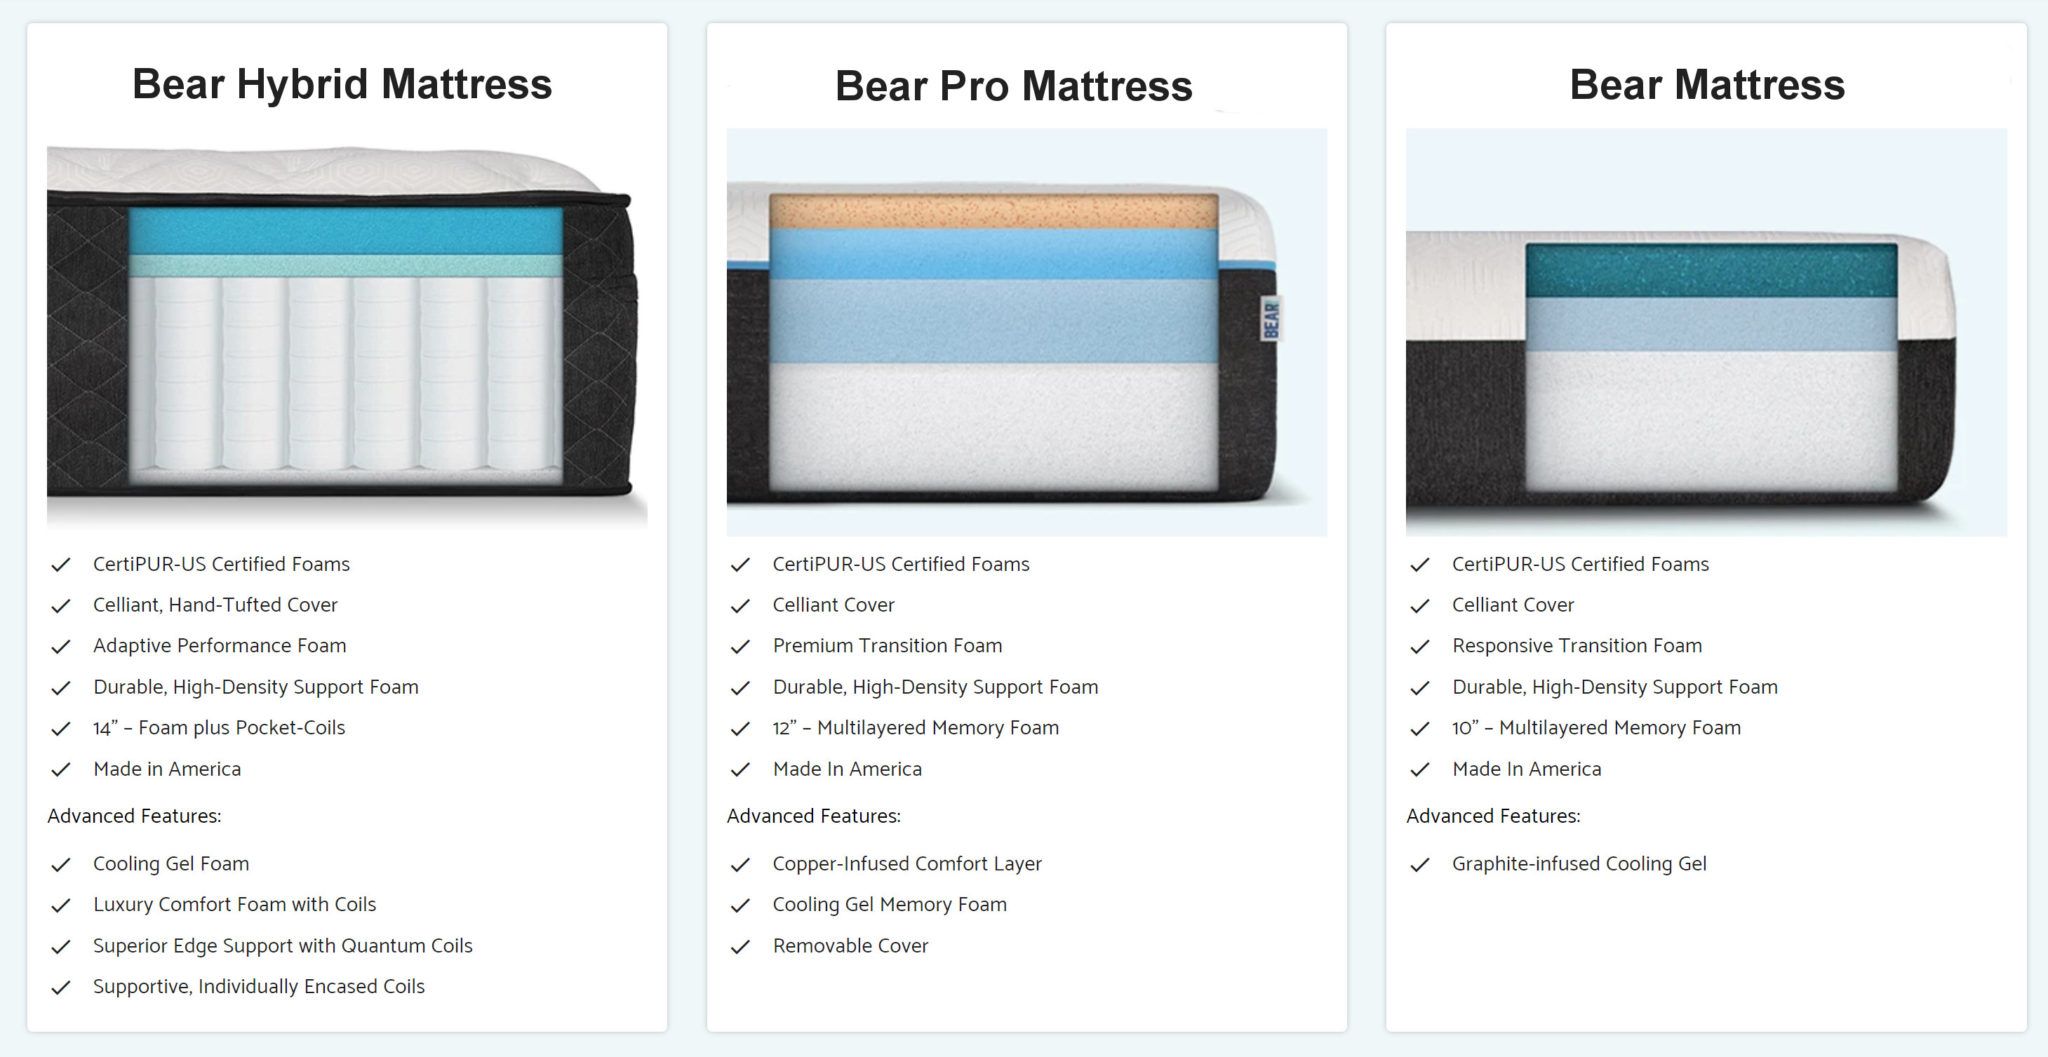 bear mattress models and options